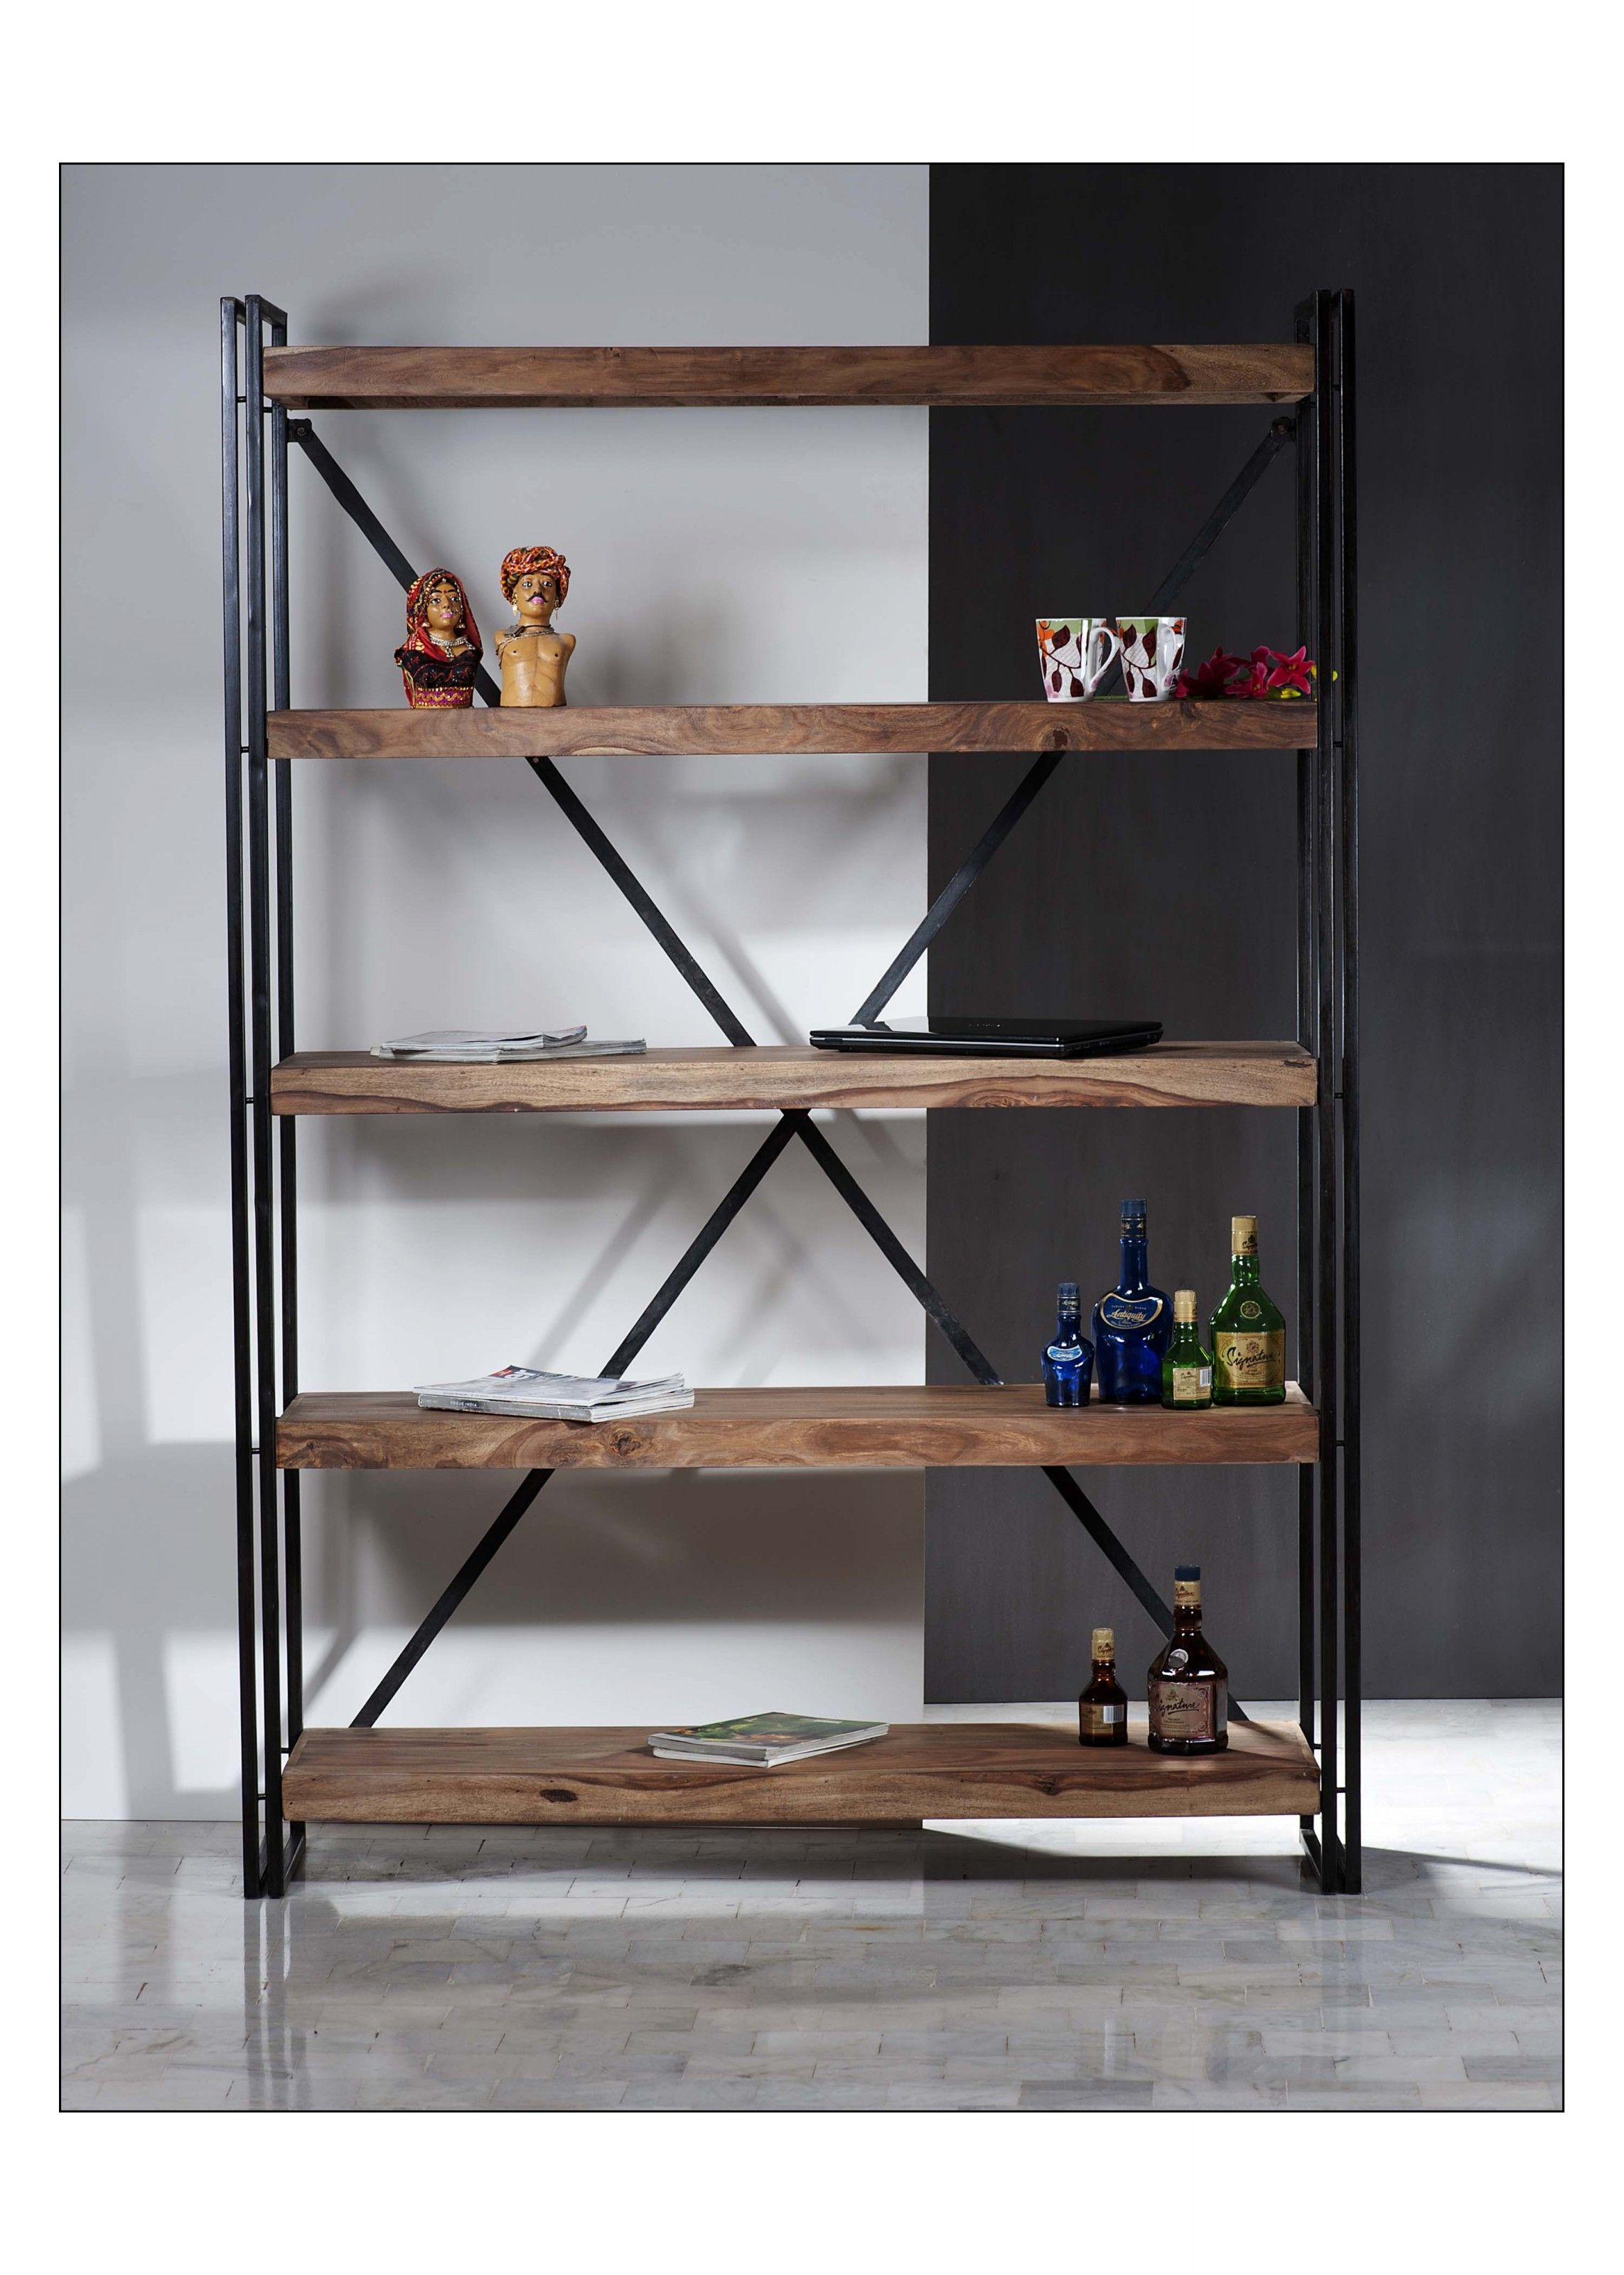 Regal 140 Cm Breit Regal Farum Big 2 Home Shelves Bookcase Shelves Und